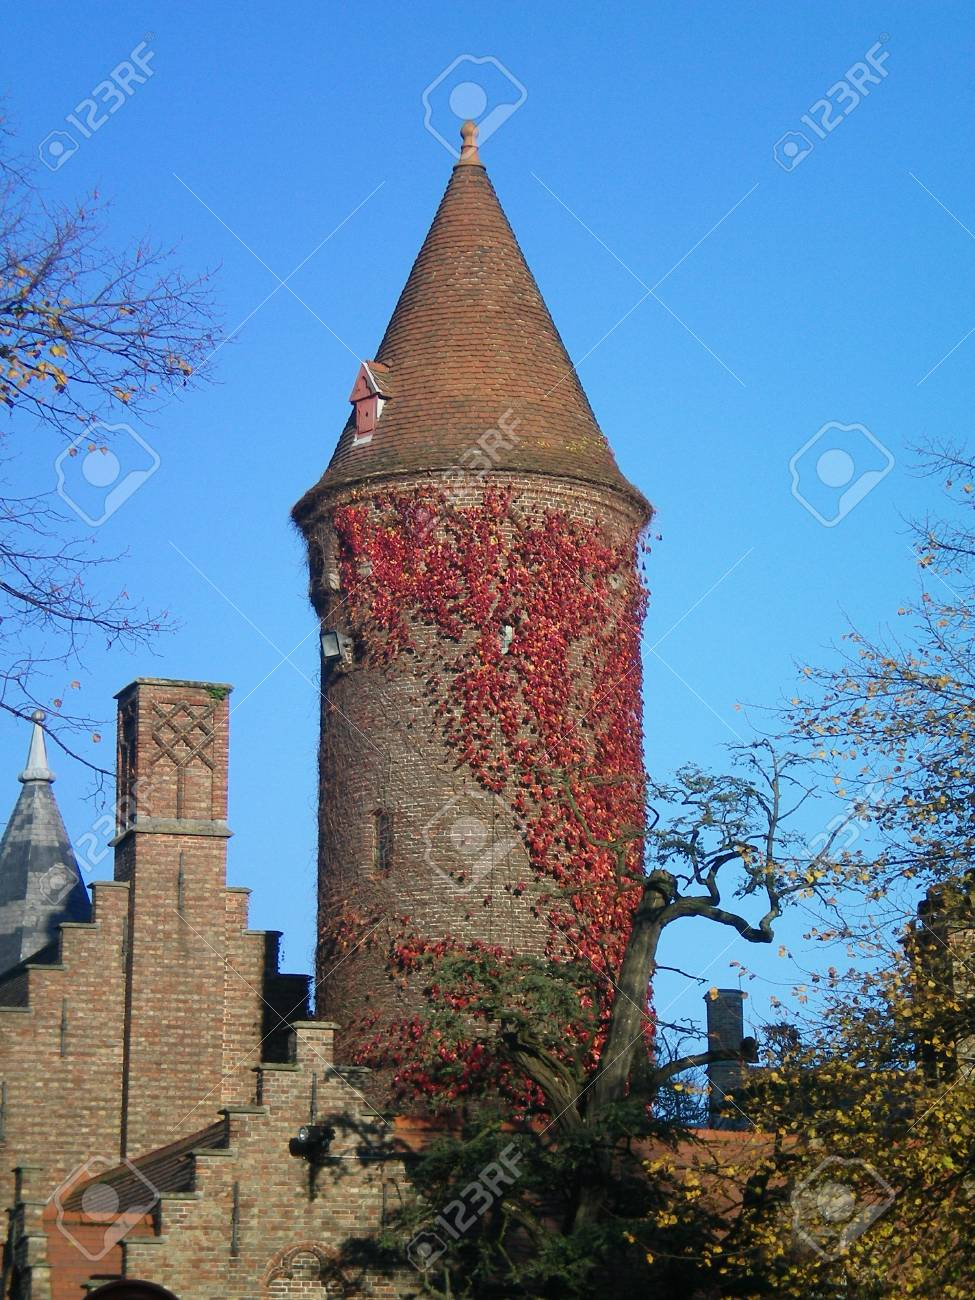 A tower of brick, with a pointed roof and covered with red vines. It stands against a clear blue sky, with some trees in the foreground. Other buildings, with stepped roofline, are nearby. Stock Photo - 92175219